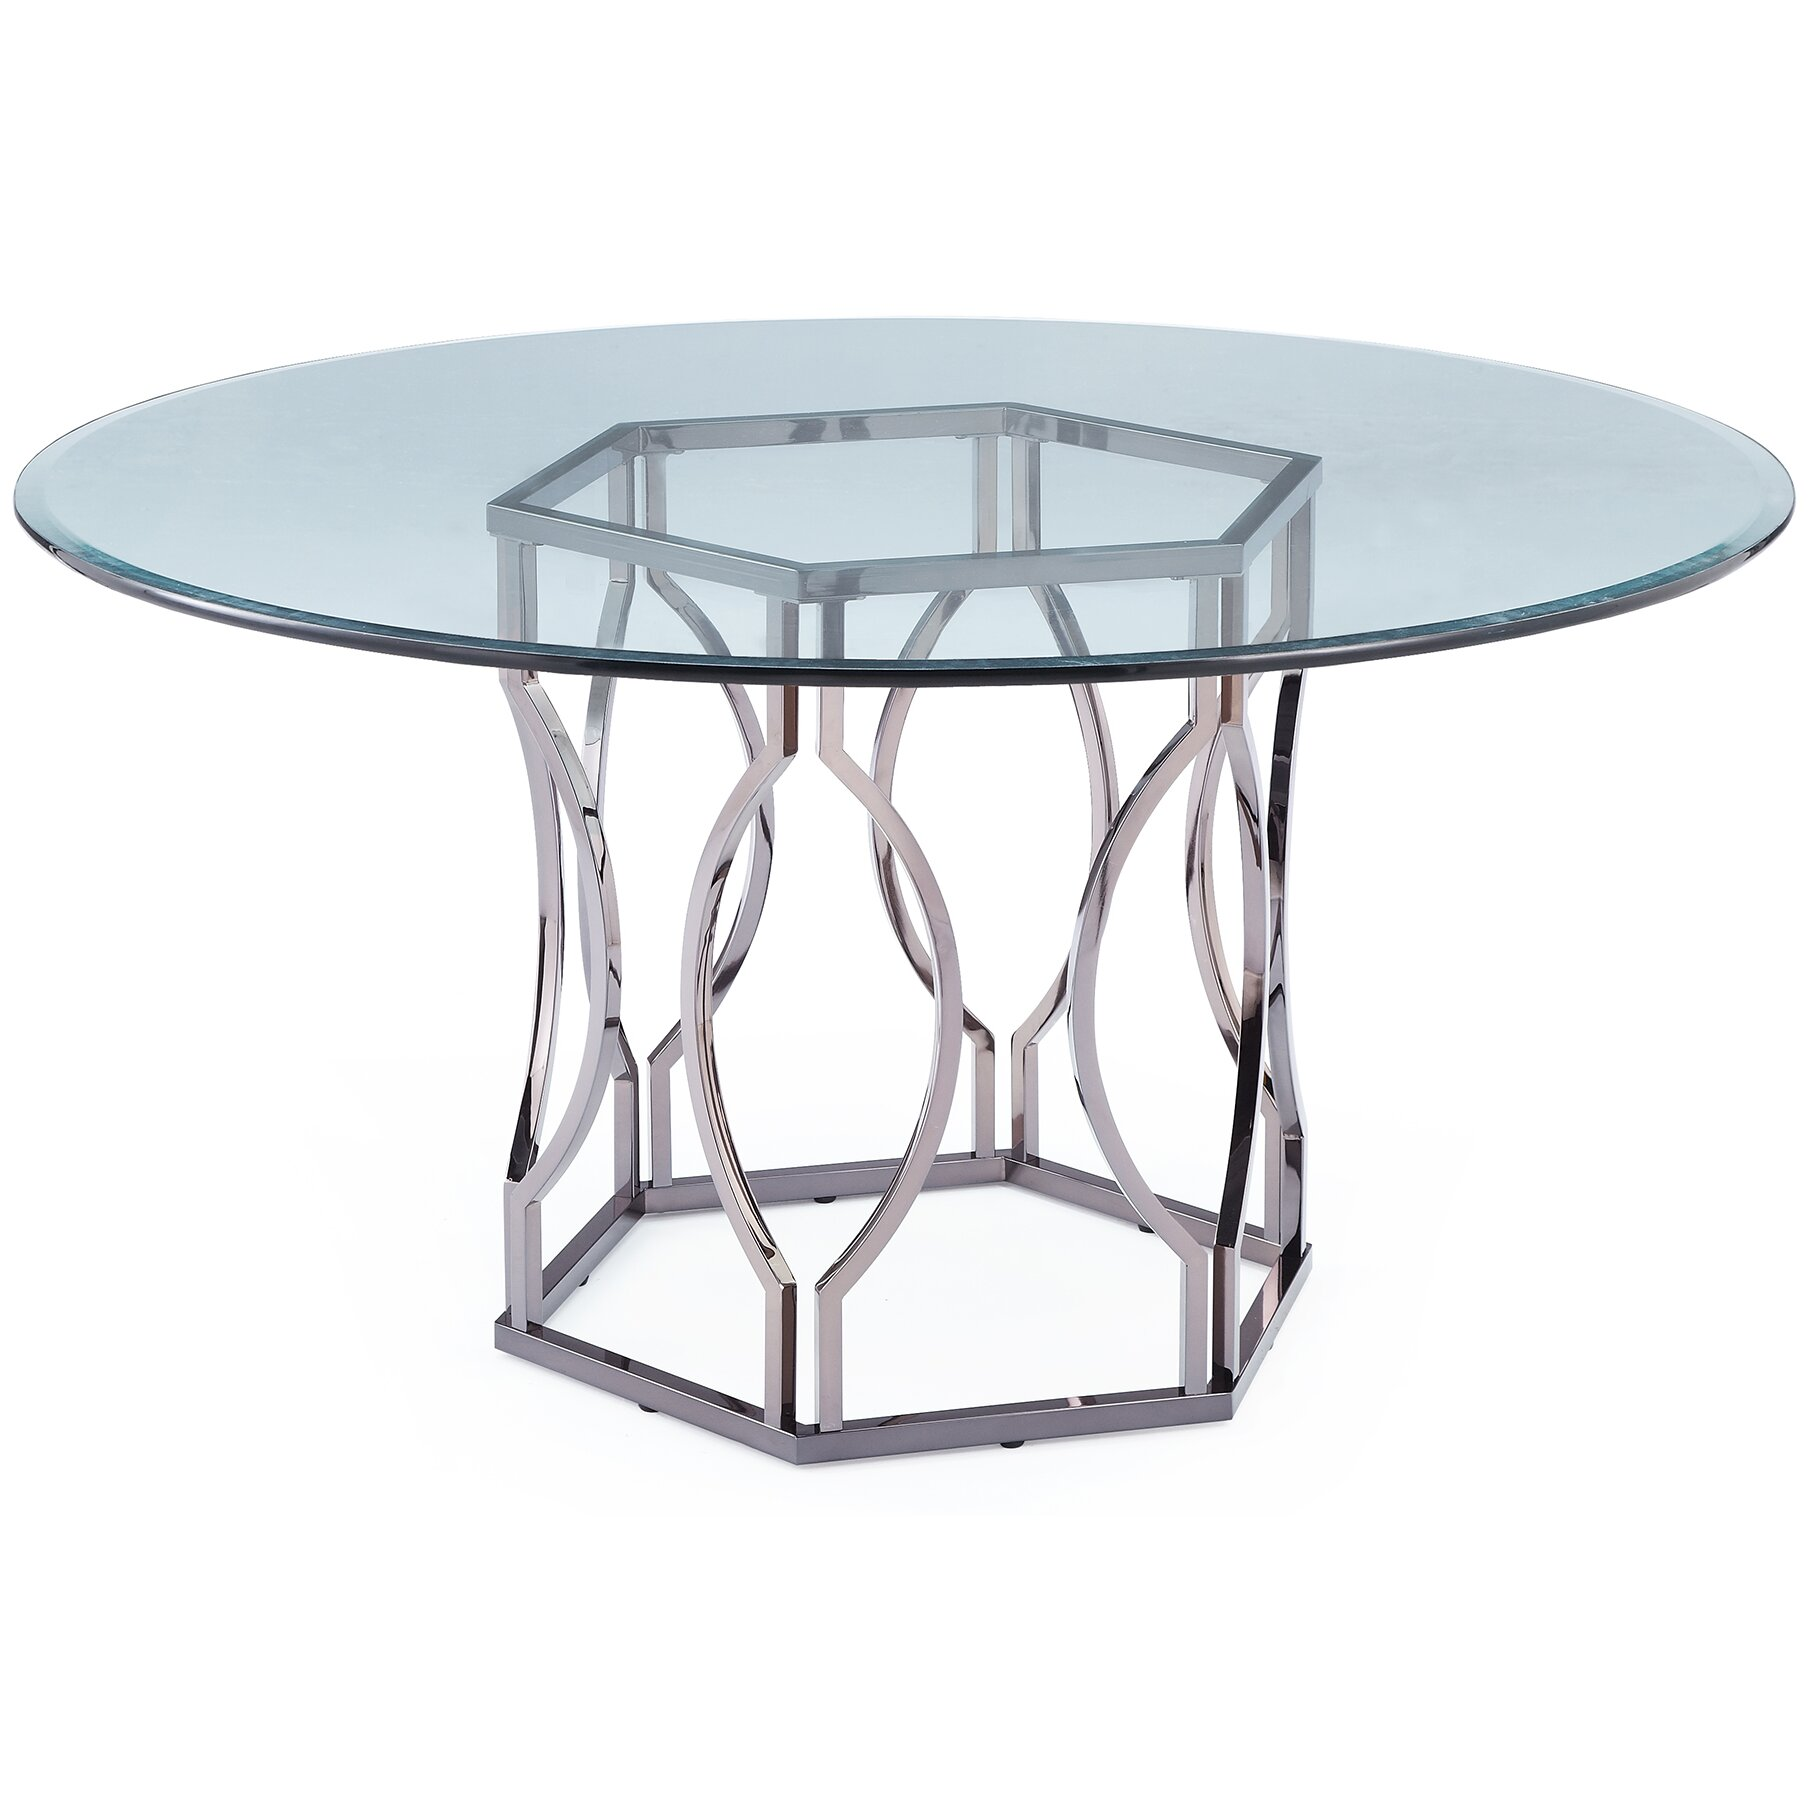 Mercer41 viggo round glass dining table reviews wayfair Glass dining table